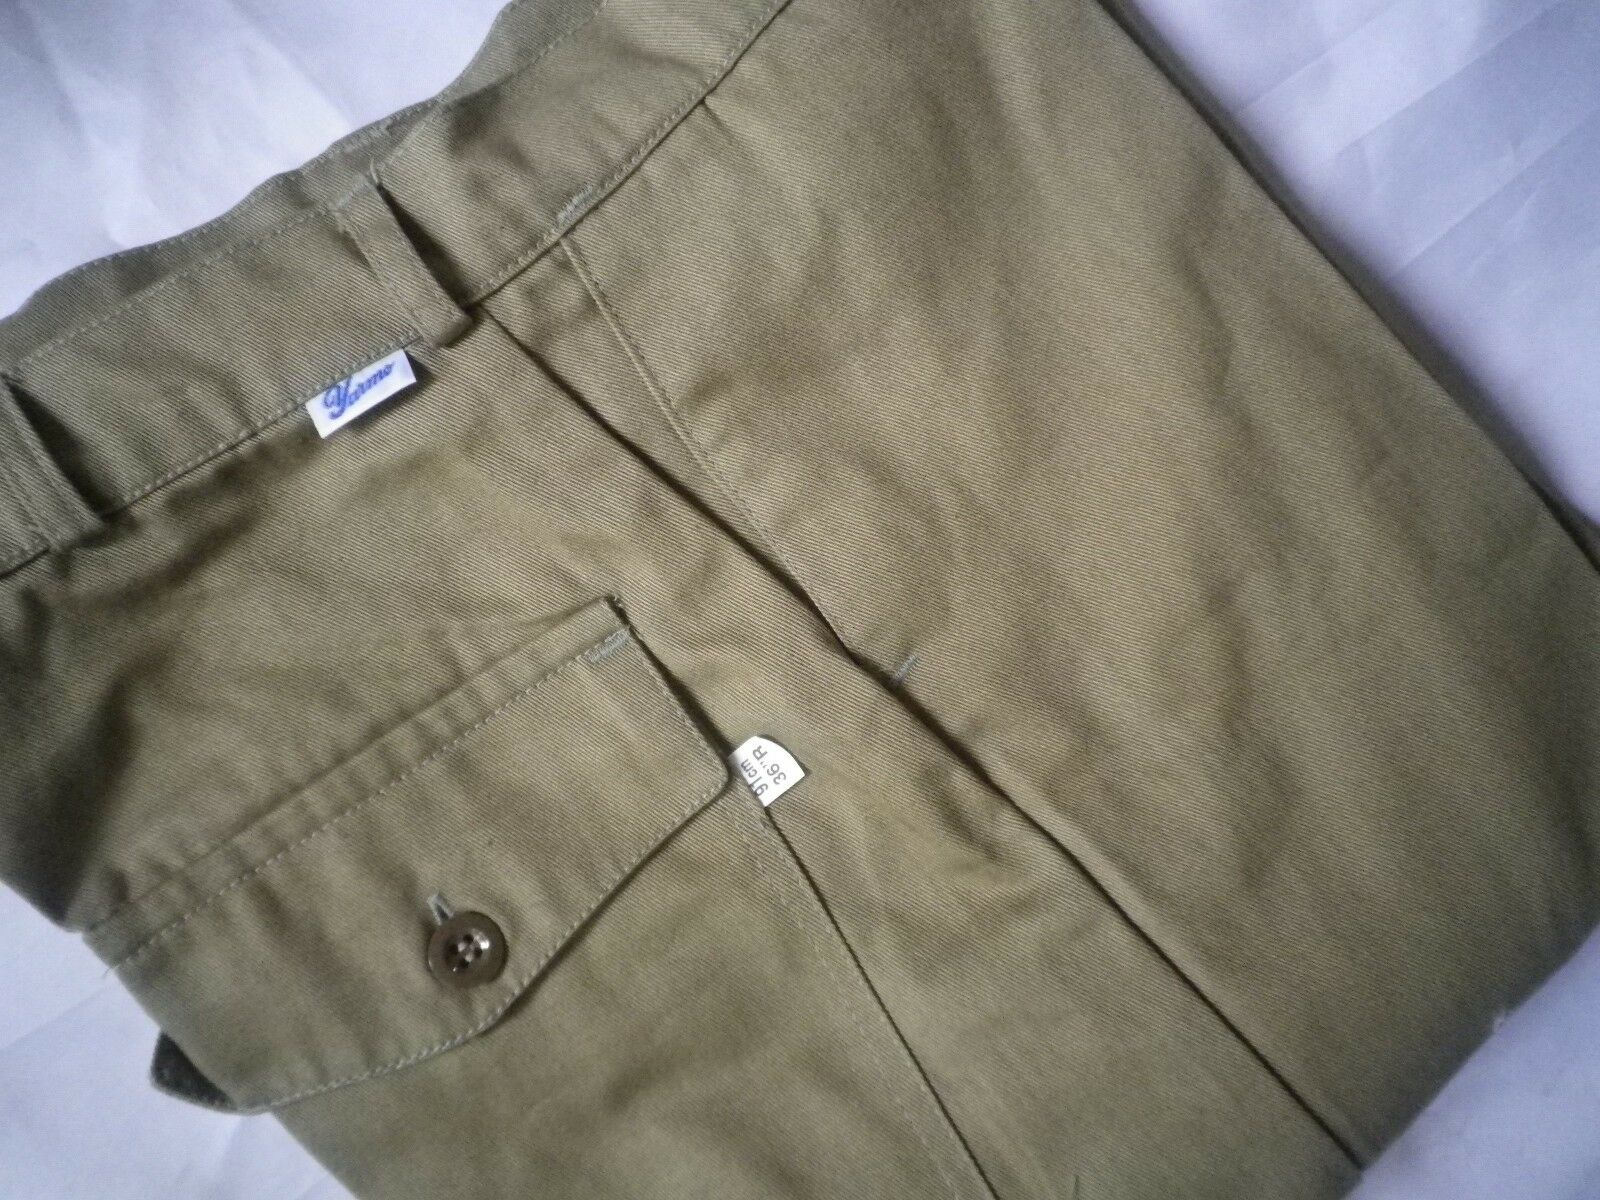 YARMO Utility  Work Trousers N.O.S. Size 32 X 29